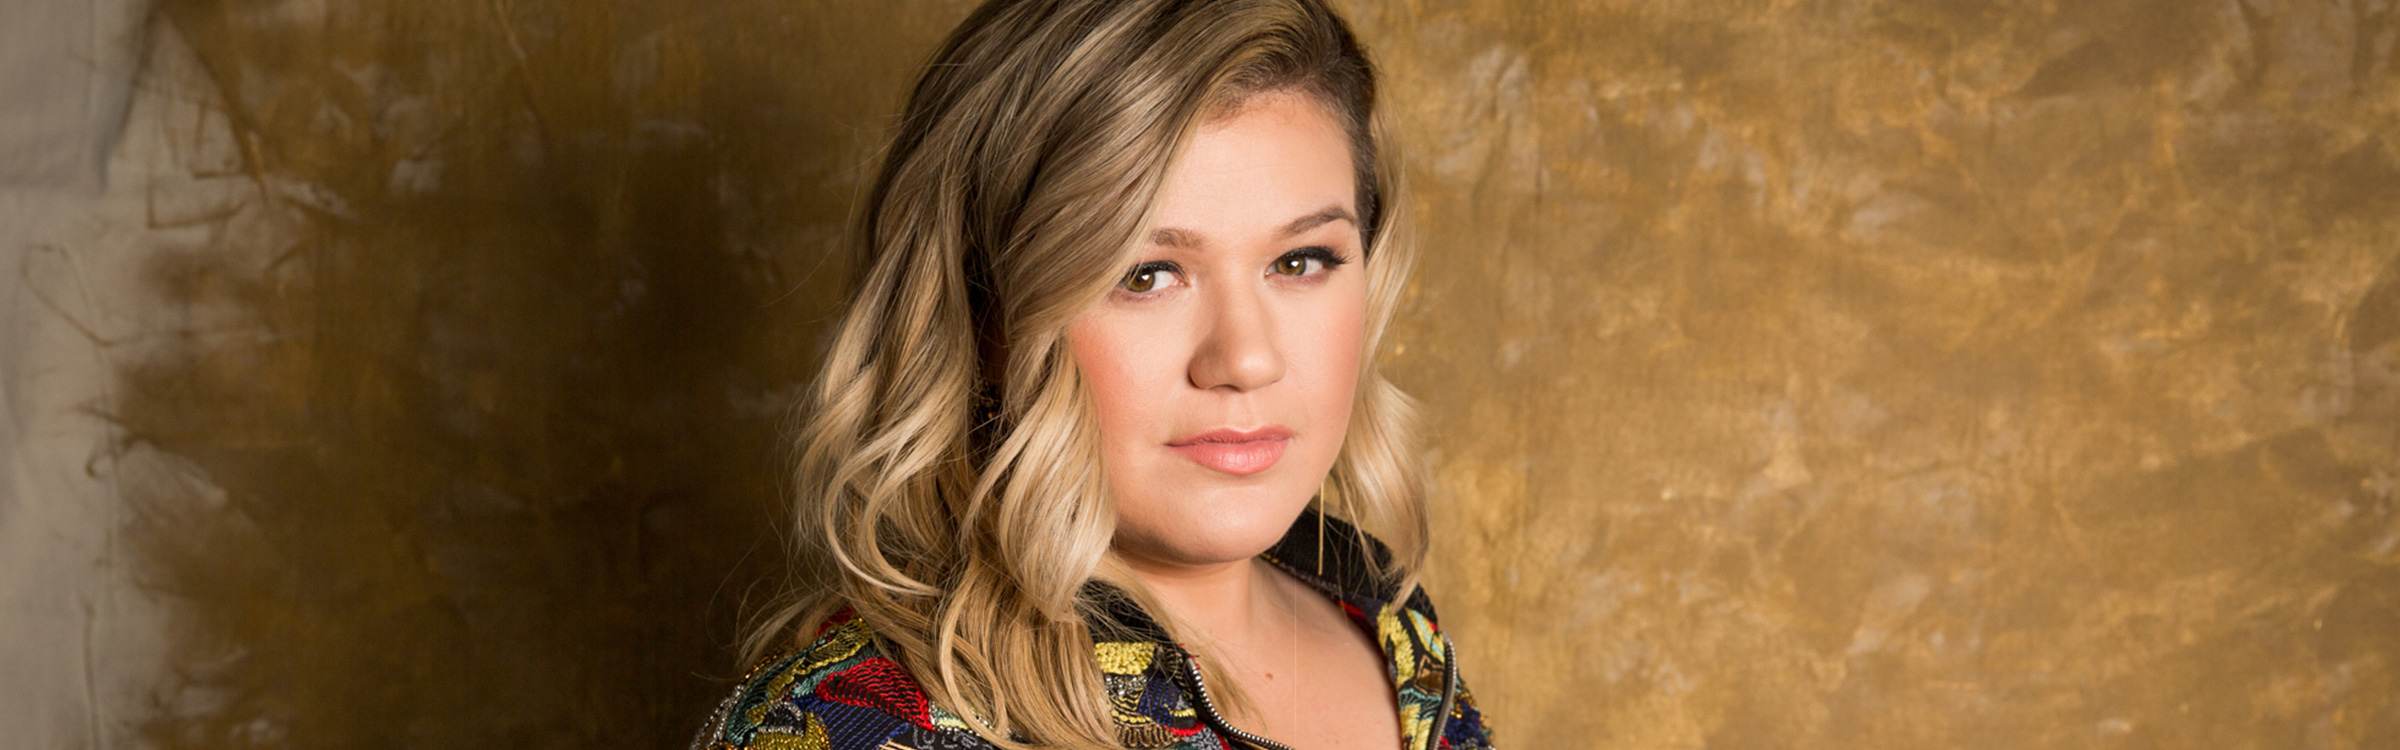 Header kelly clarkson